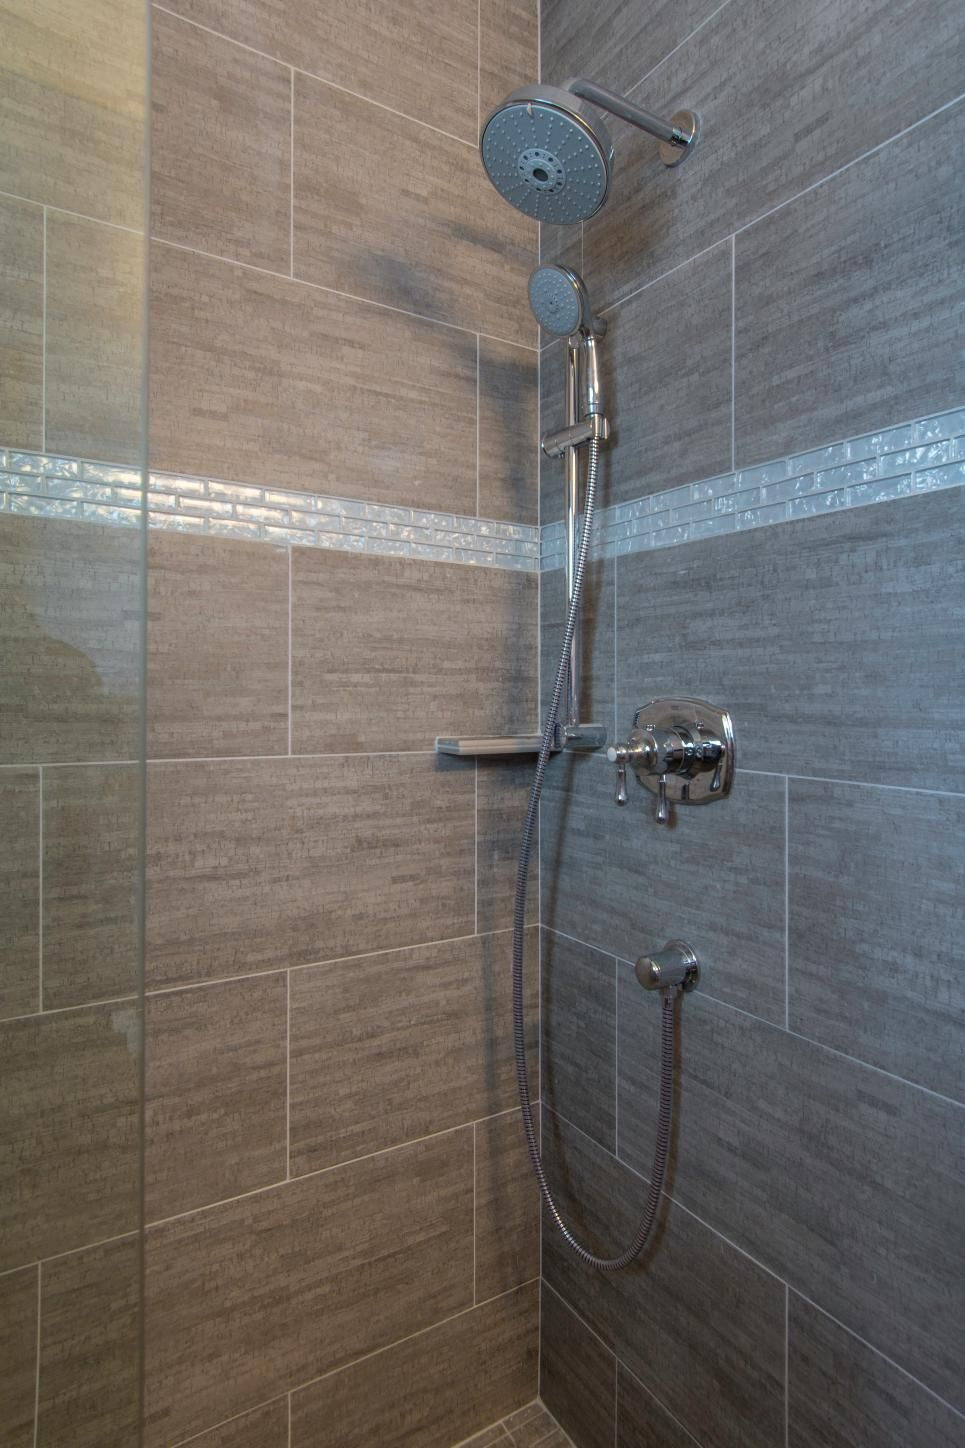 The gray tiled shower stall brings added color, texture and visual ...